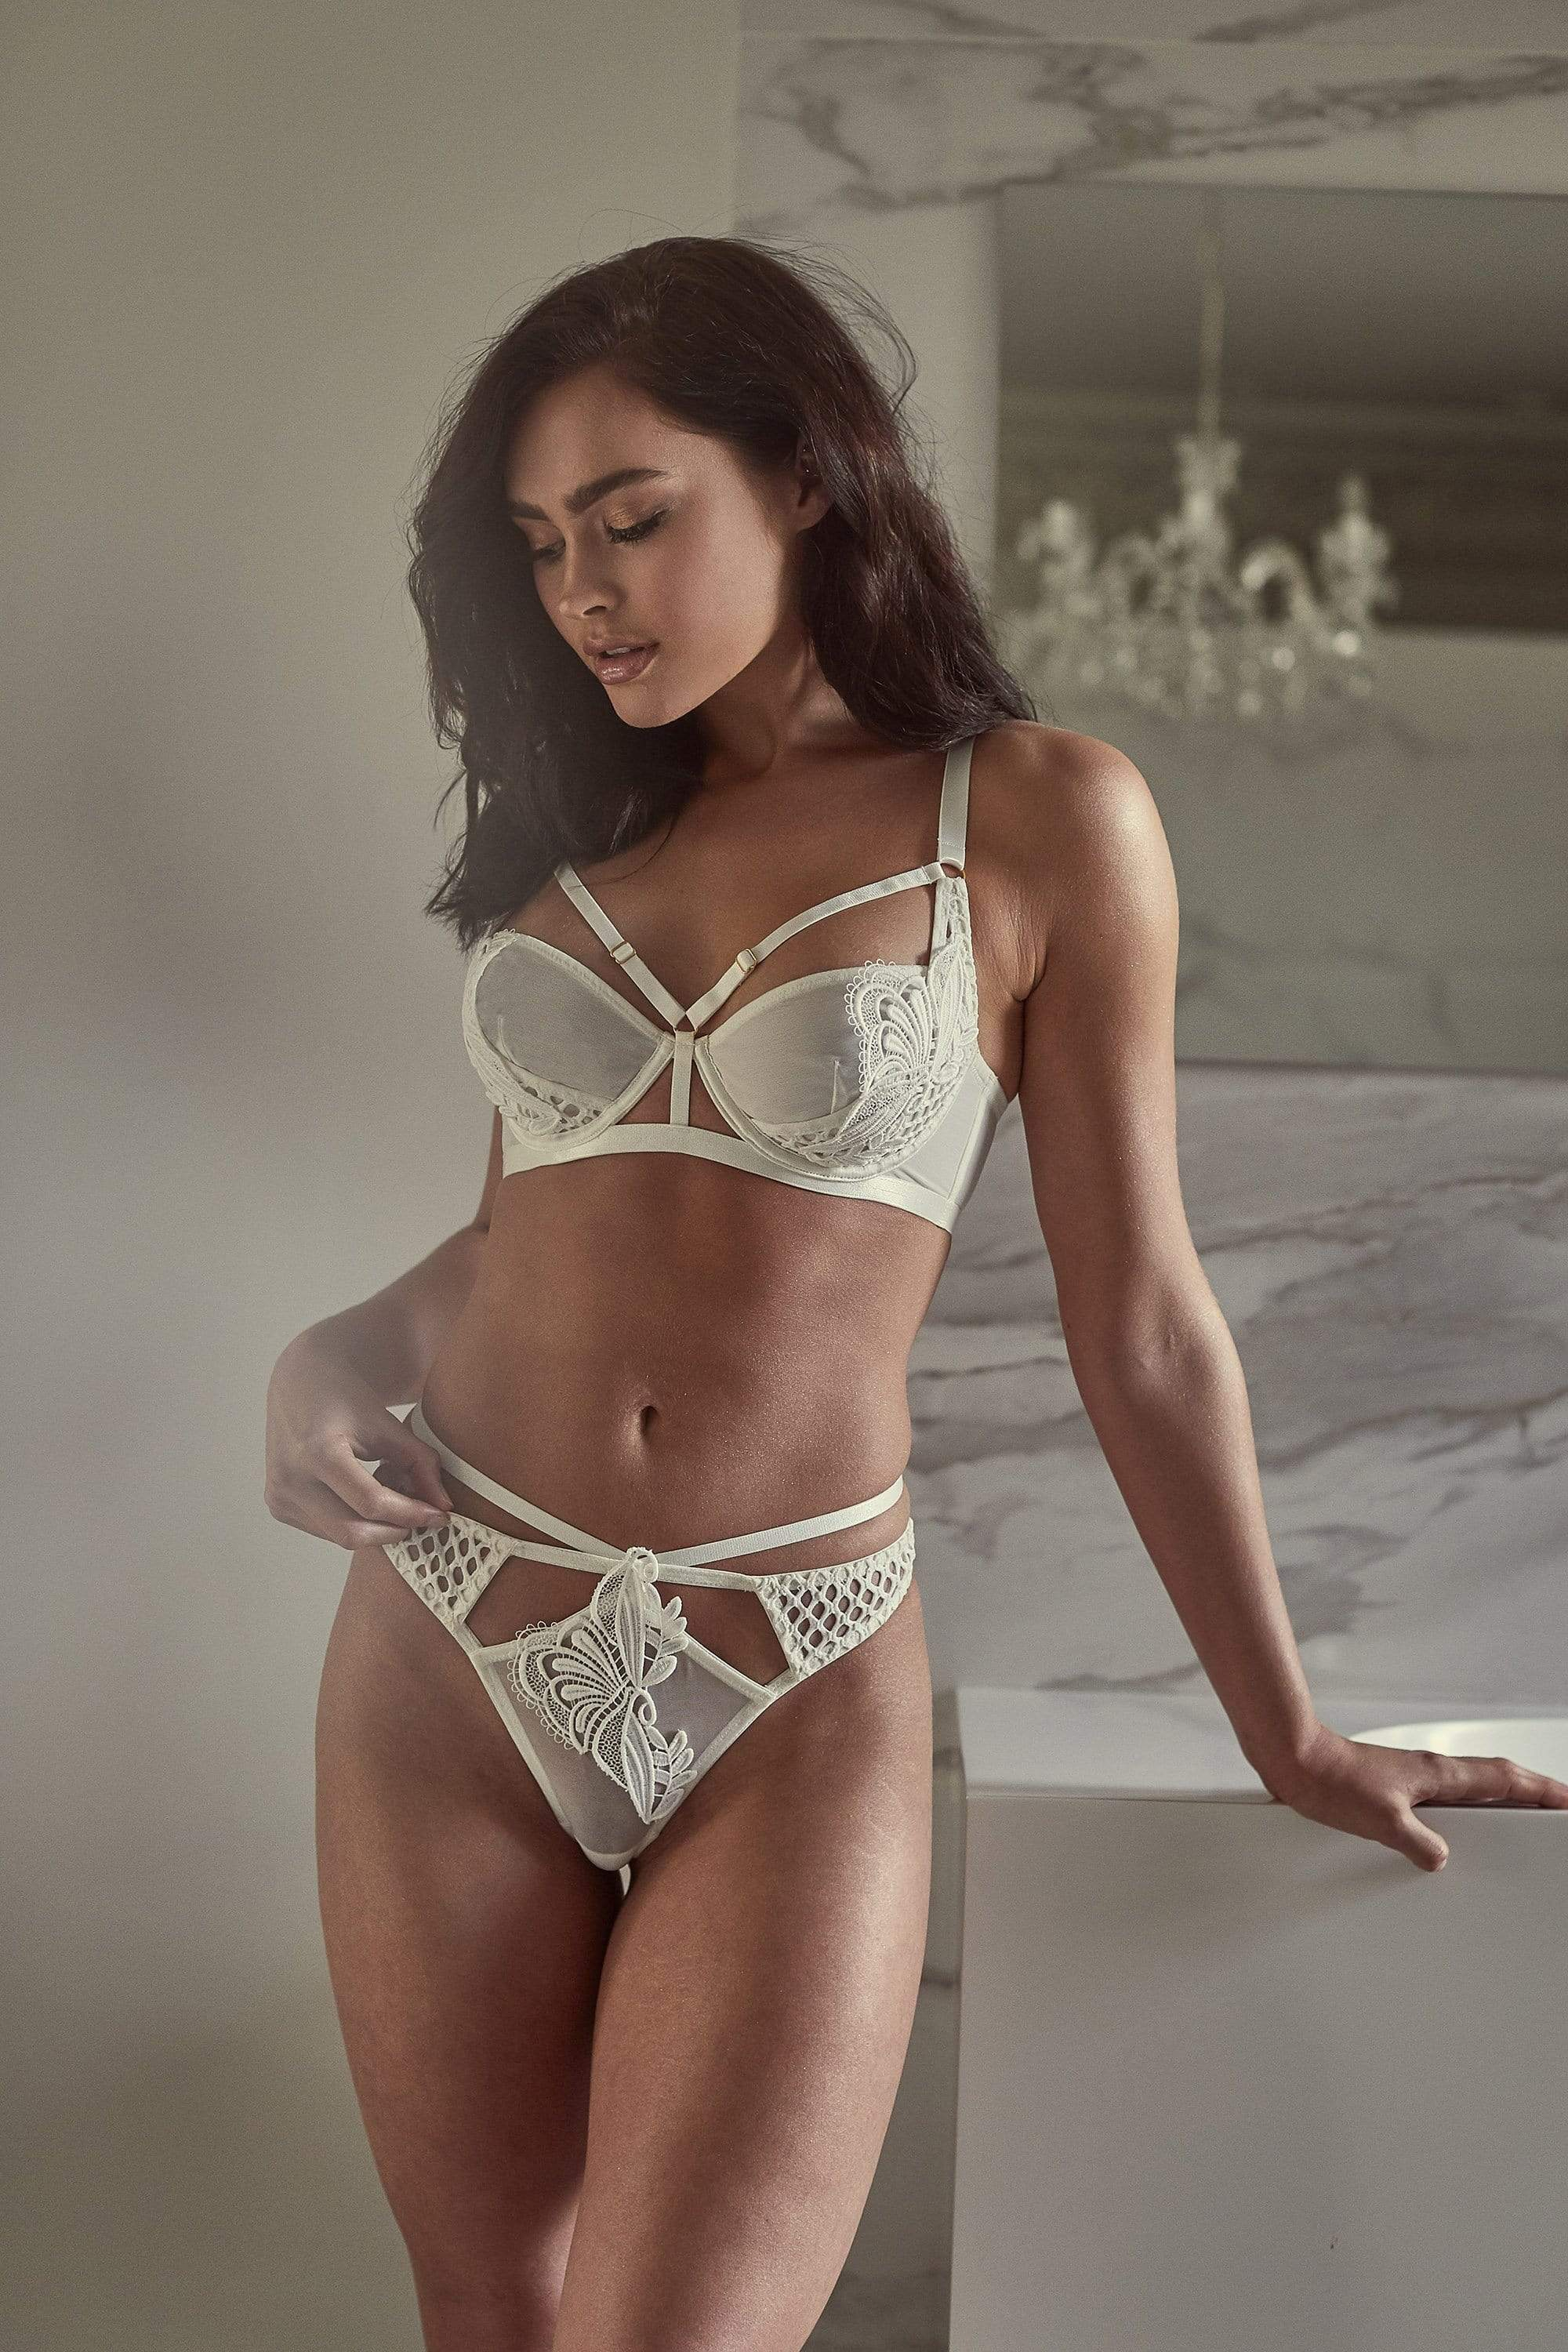 Wolf & Whistle Ivory Keira Fishnet Applique Strappy Thong UK 8 / US 4